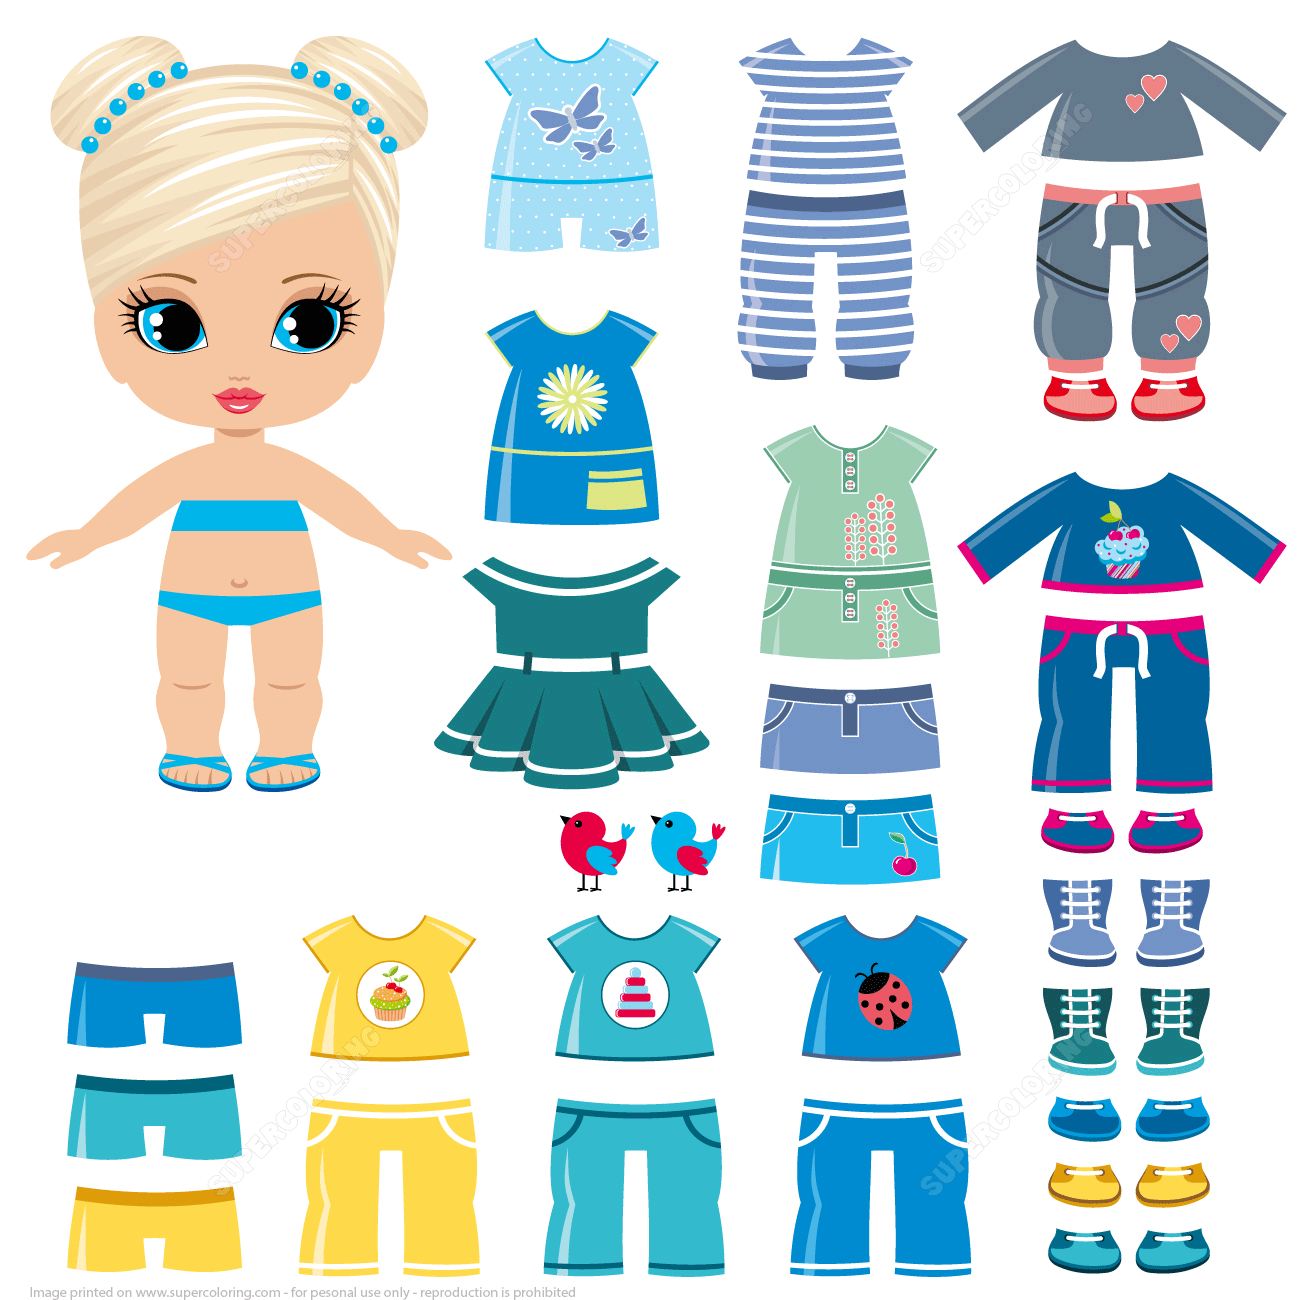 Summer Clothing And Shoes For A Little Girl Paper Doll